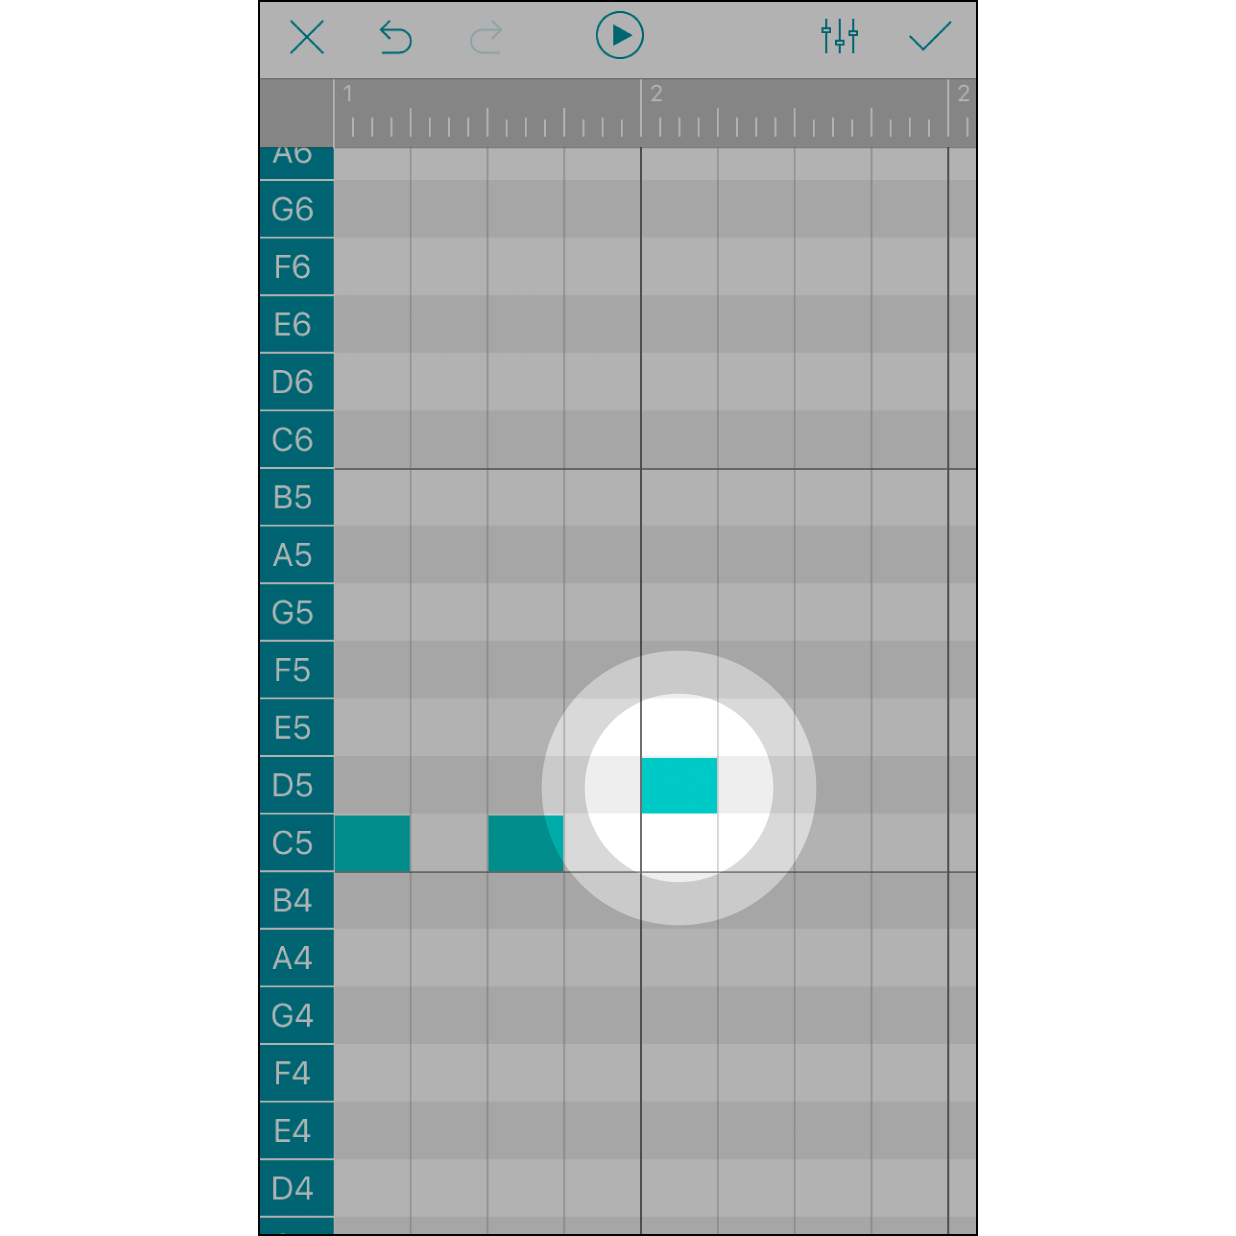 Touch to Add a NoteTouch any box to add a note. Remove this note by touching it again. Each box stands for a 1/16 note. The numbers in the grey bar stand for the beats.